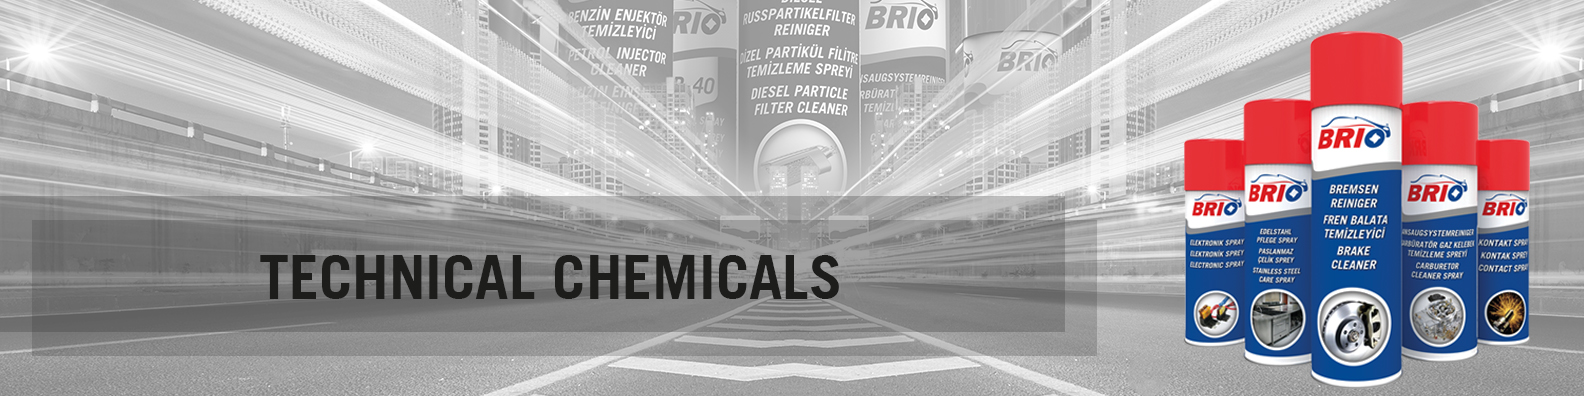 BRIO Europe Technical Chemicals